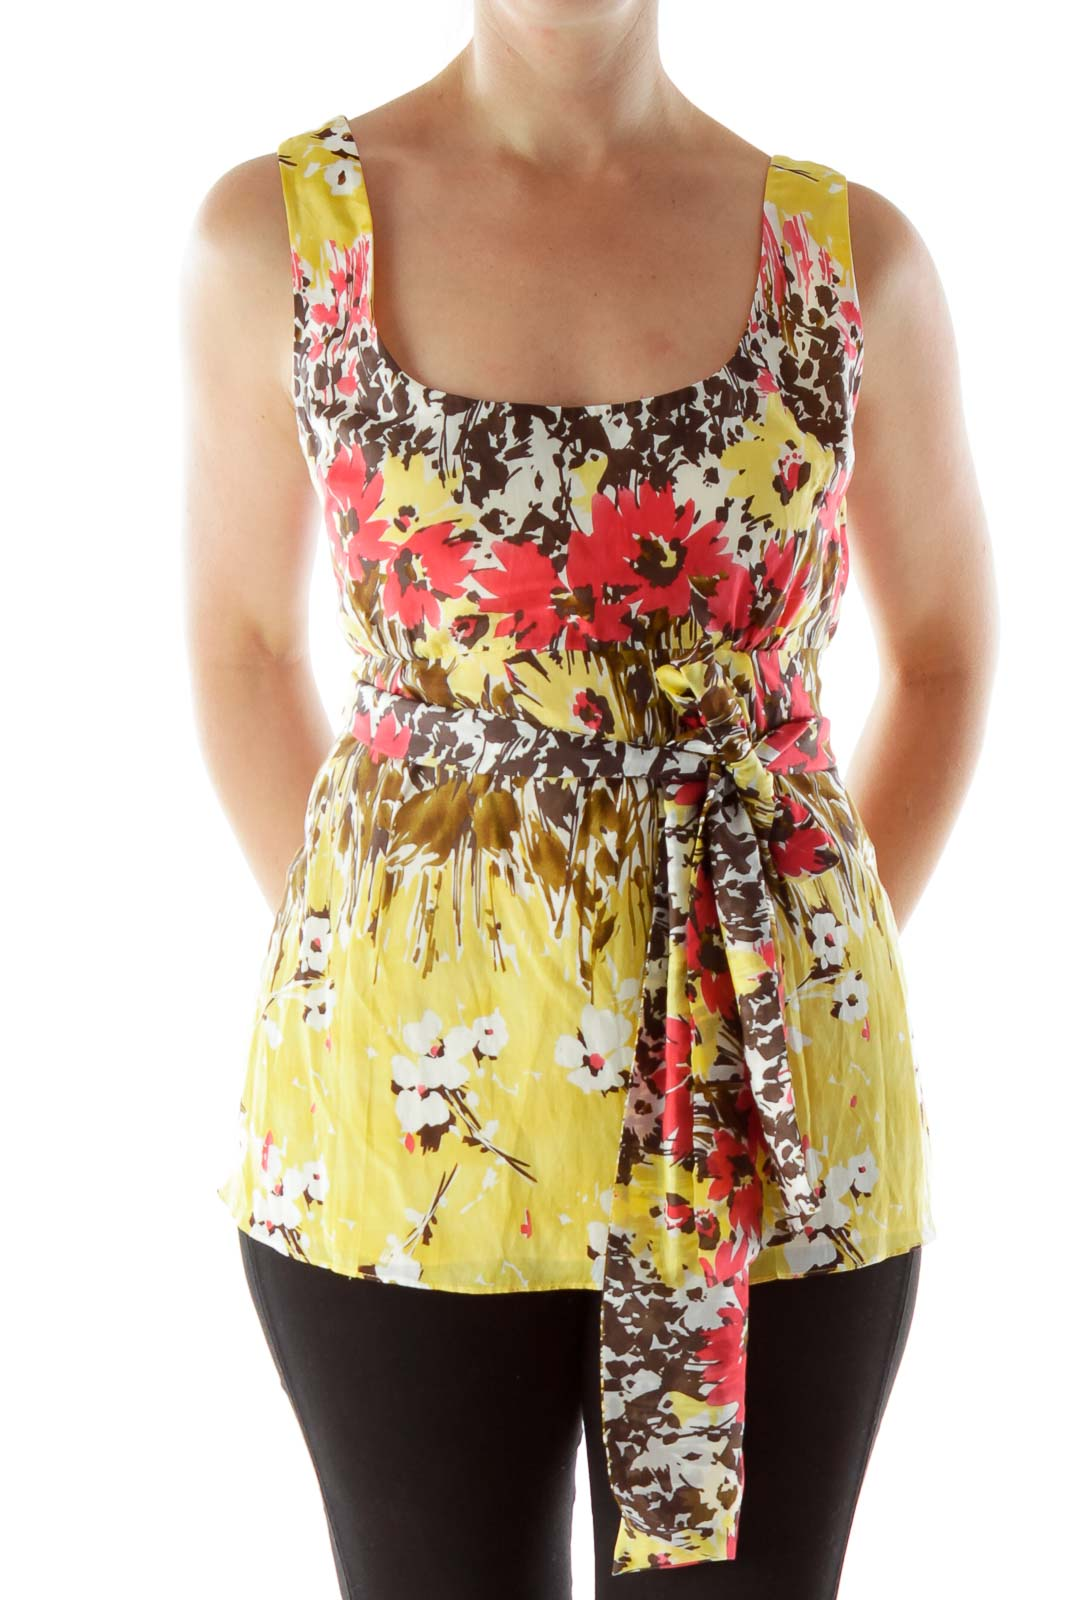 Multicolored Tank Top with Tie Front